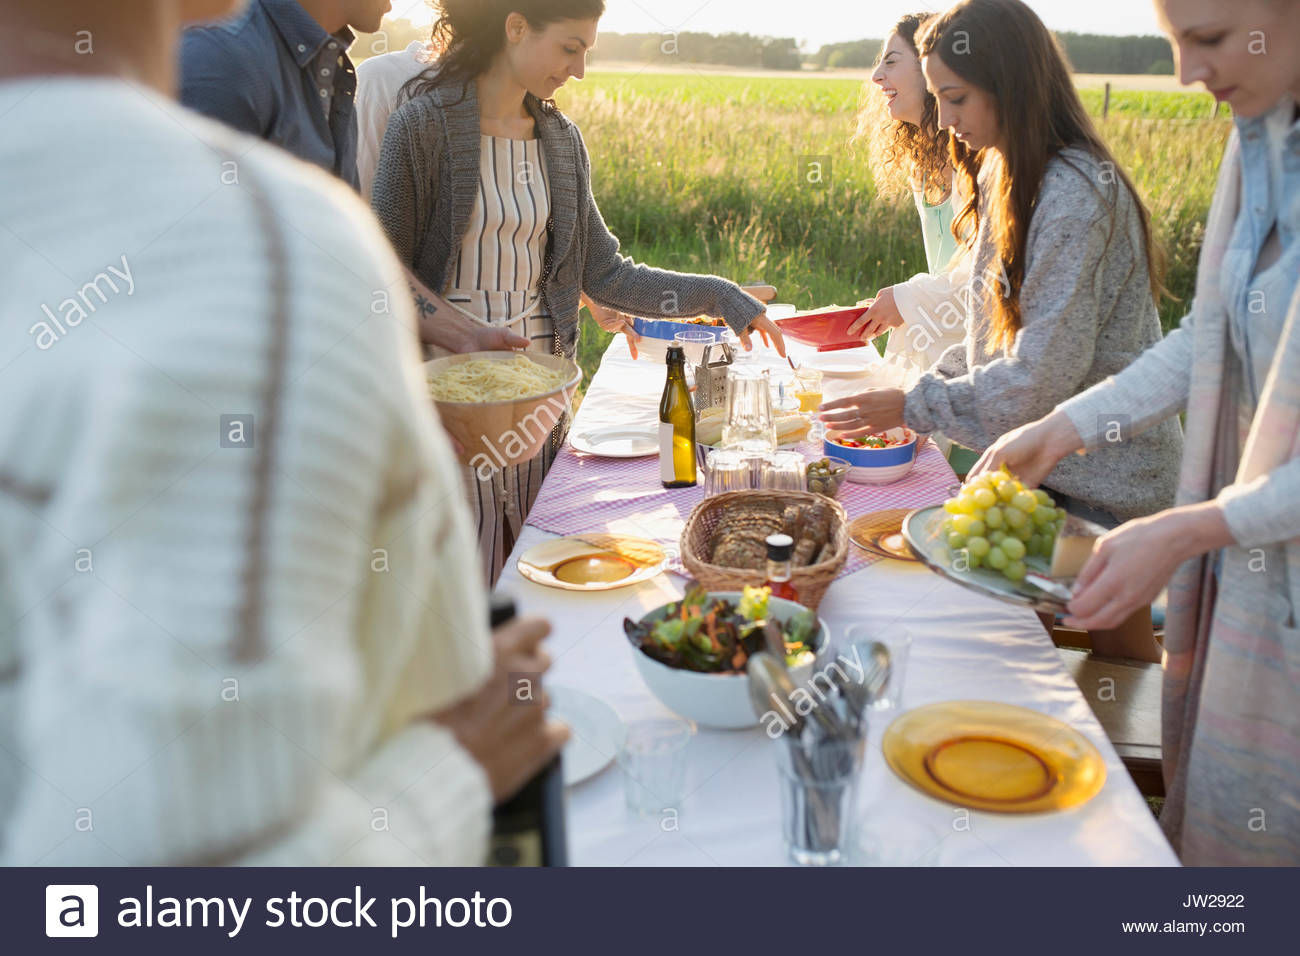 Friends setting the table for garden party dinner in rural summer yard - Stock Image